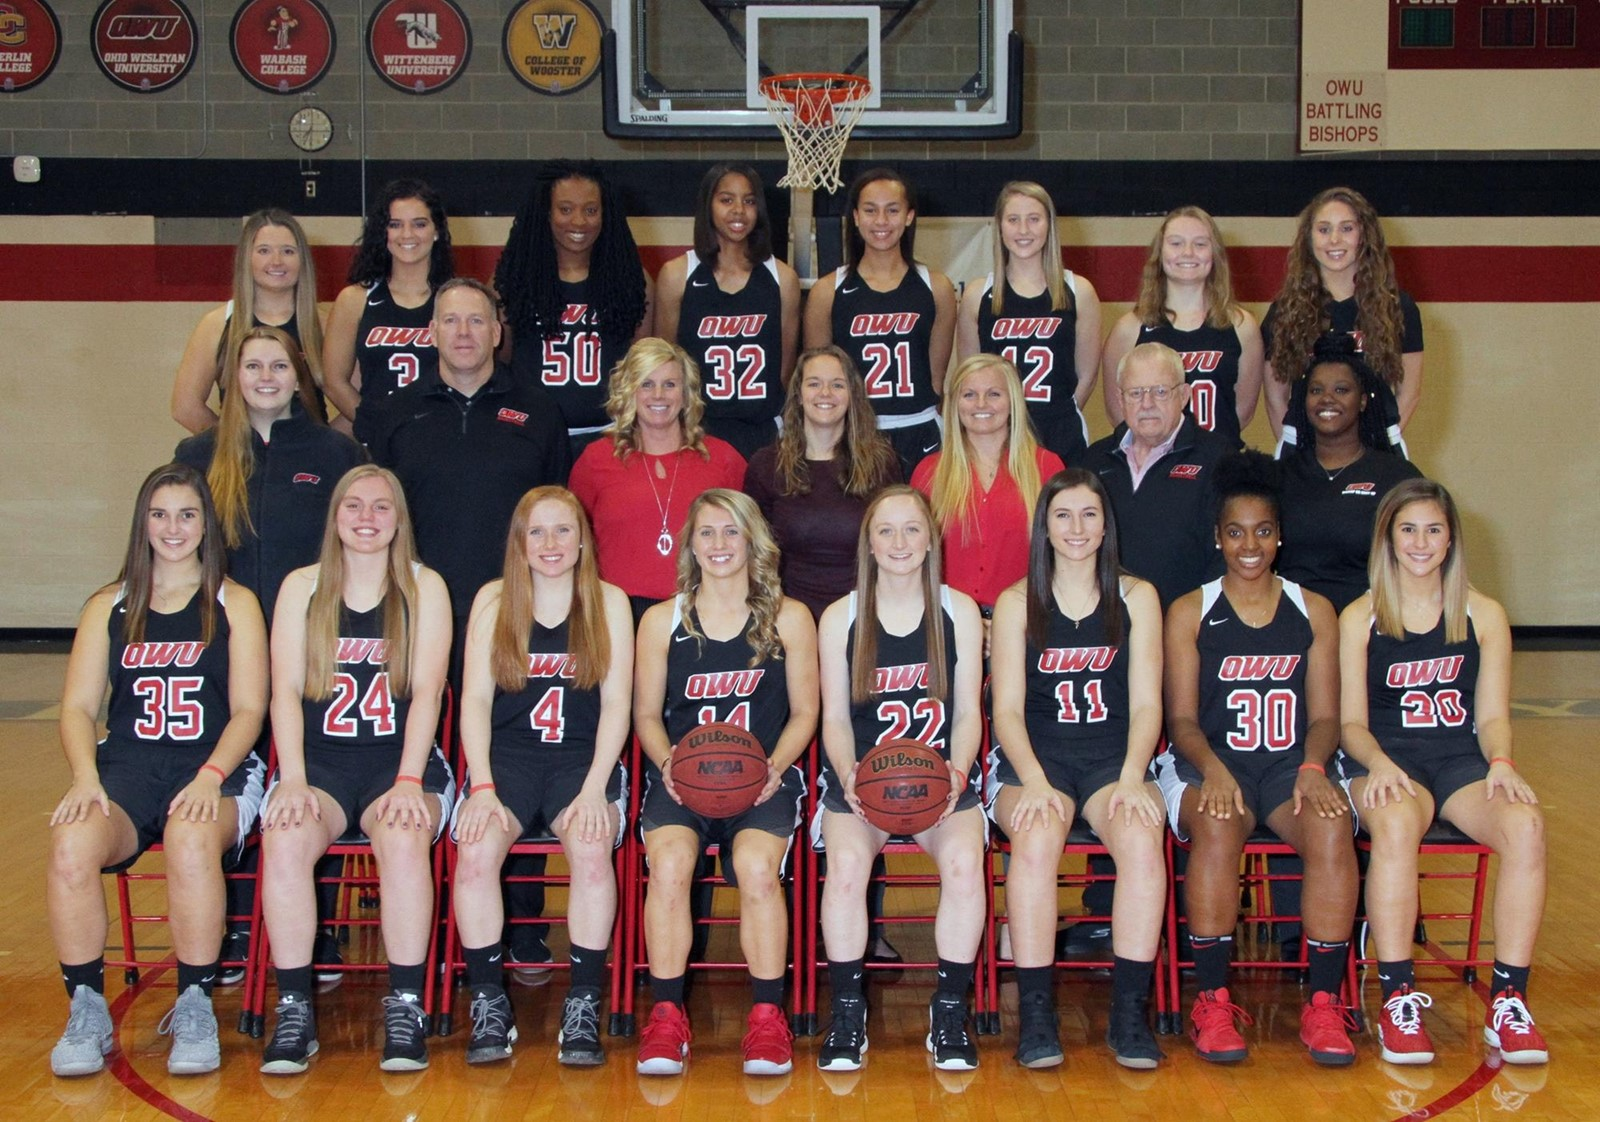 2018 19 Women S Basketball Roster Ohio Wesleyan University Athletics